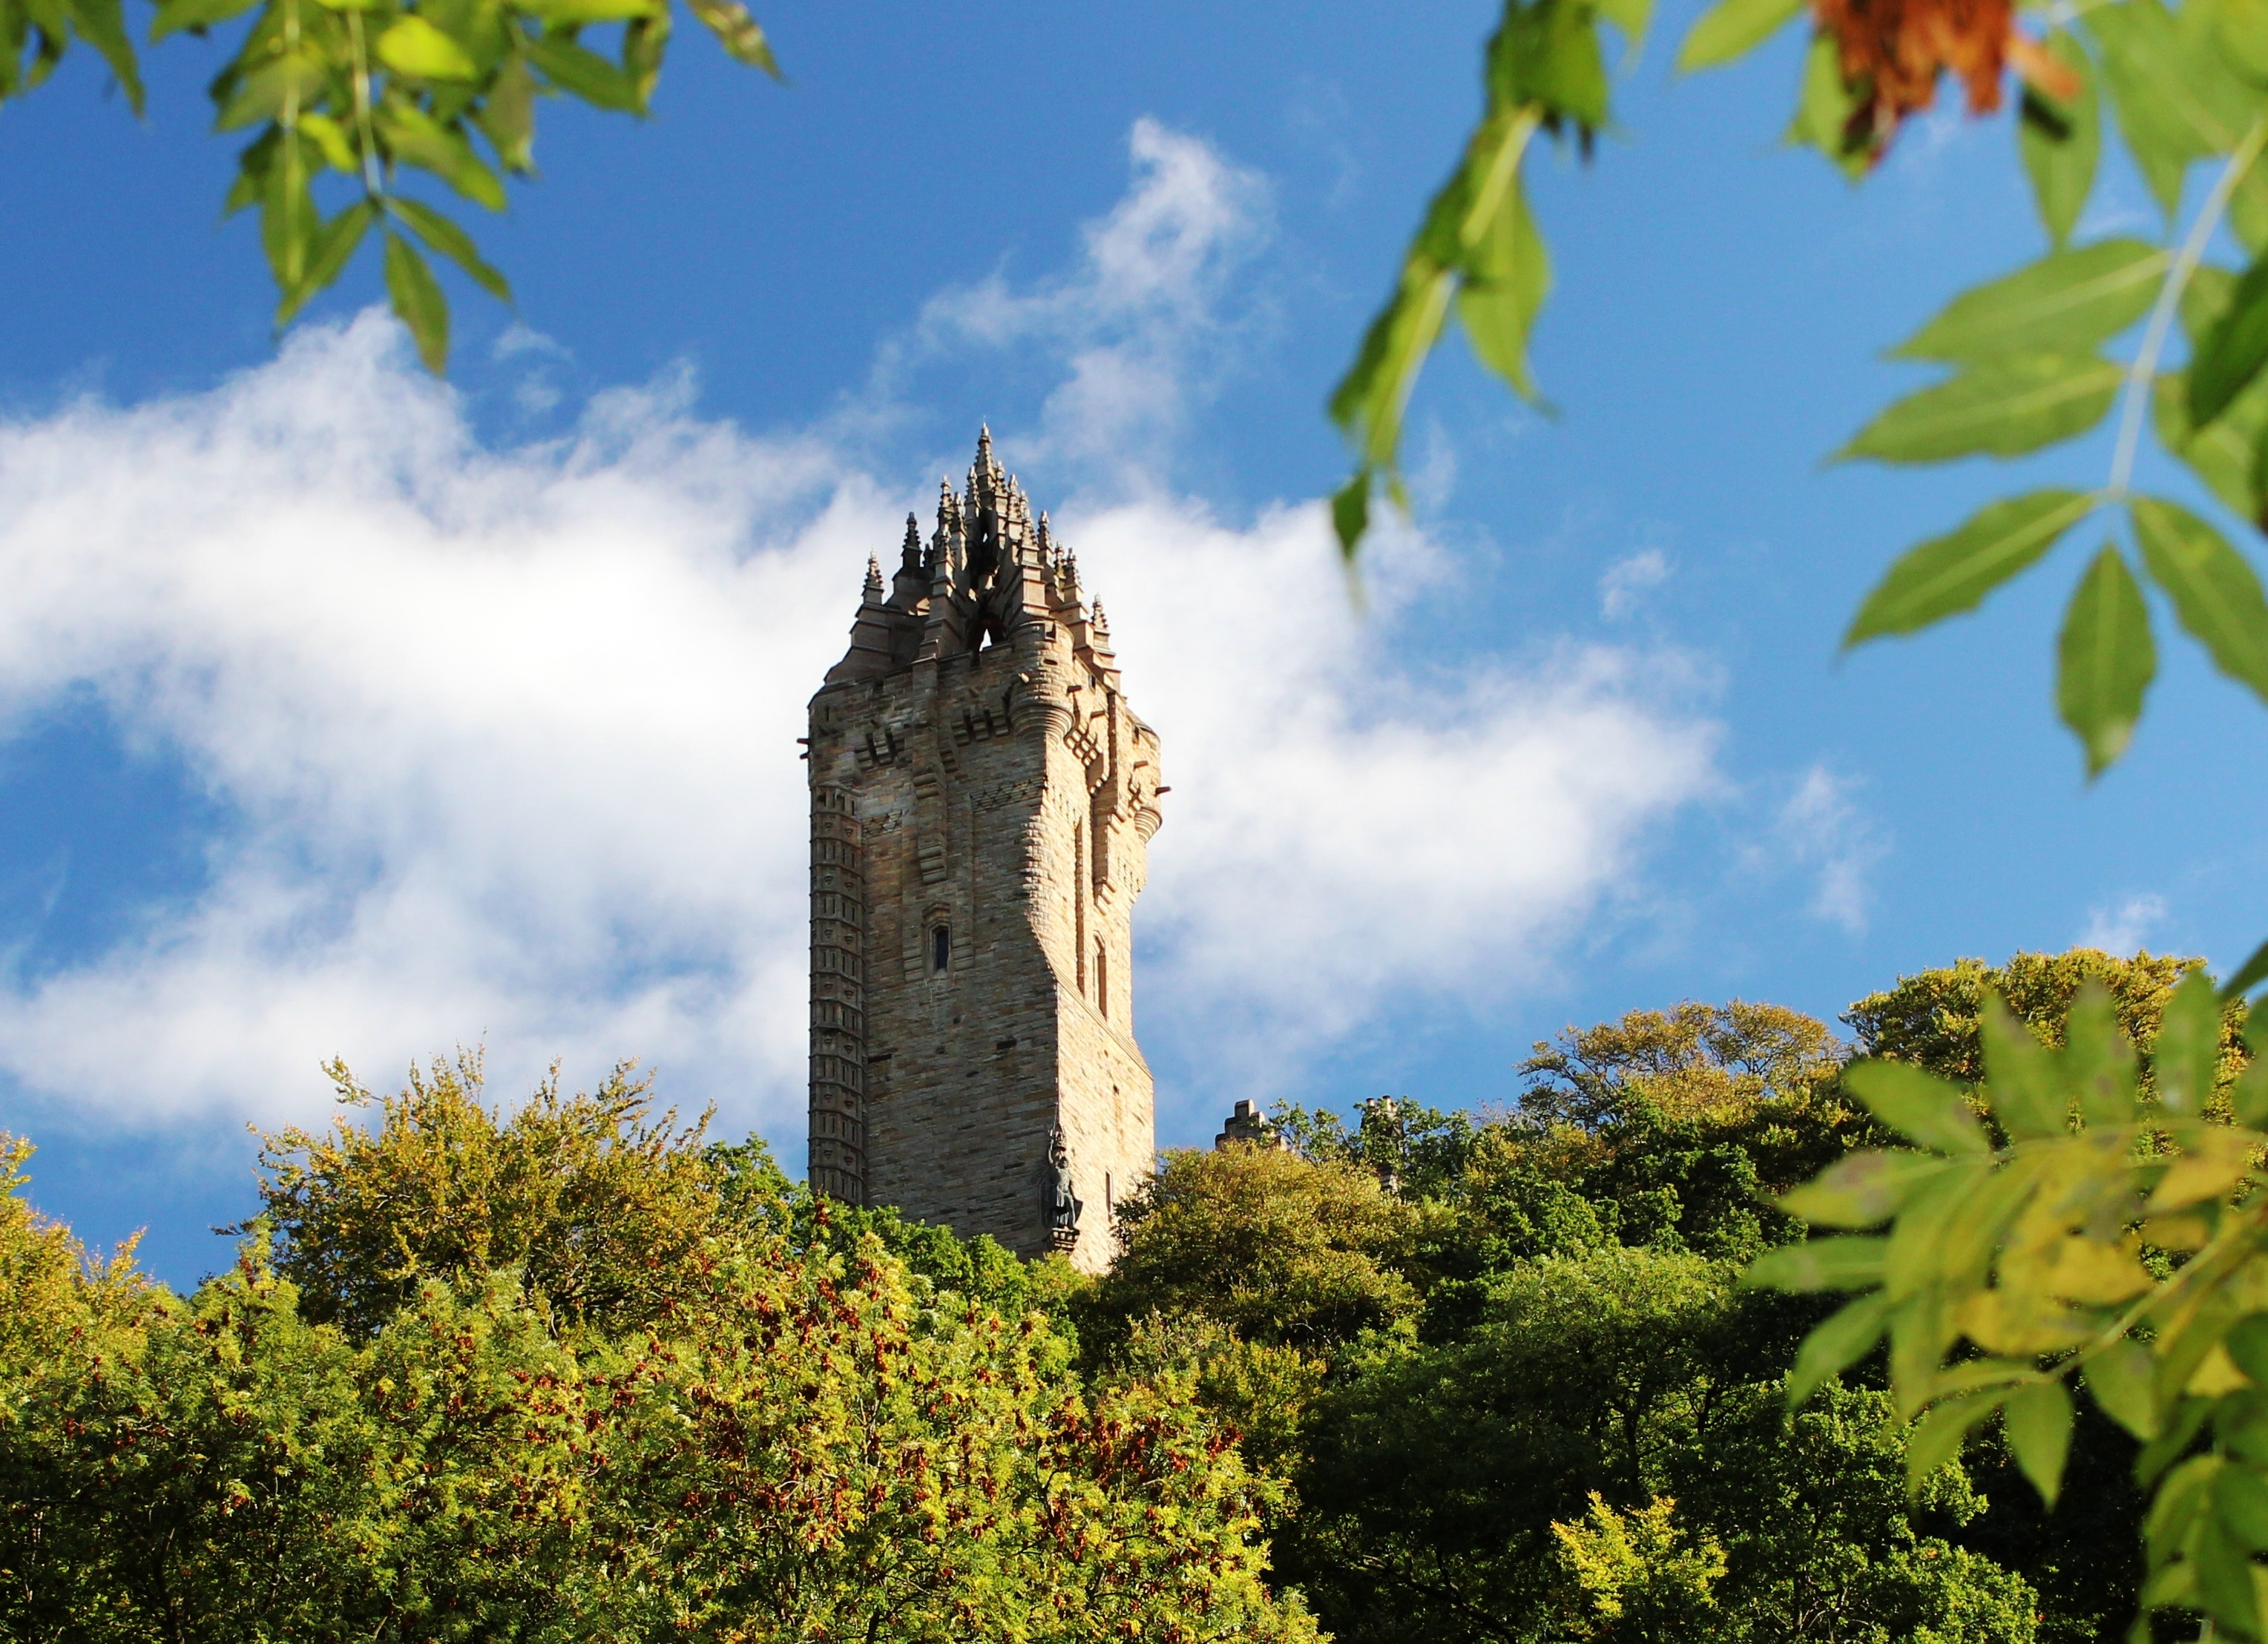 Enjoy an exclusive tour of the Wallace Monument, Stirling